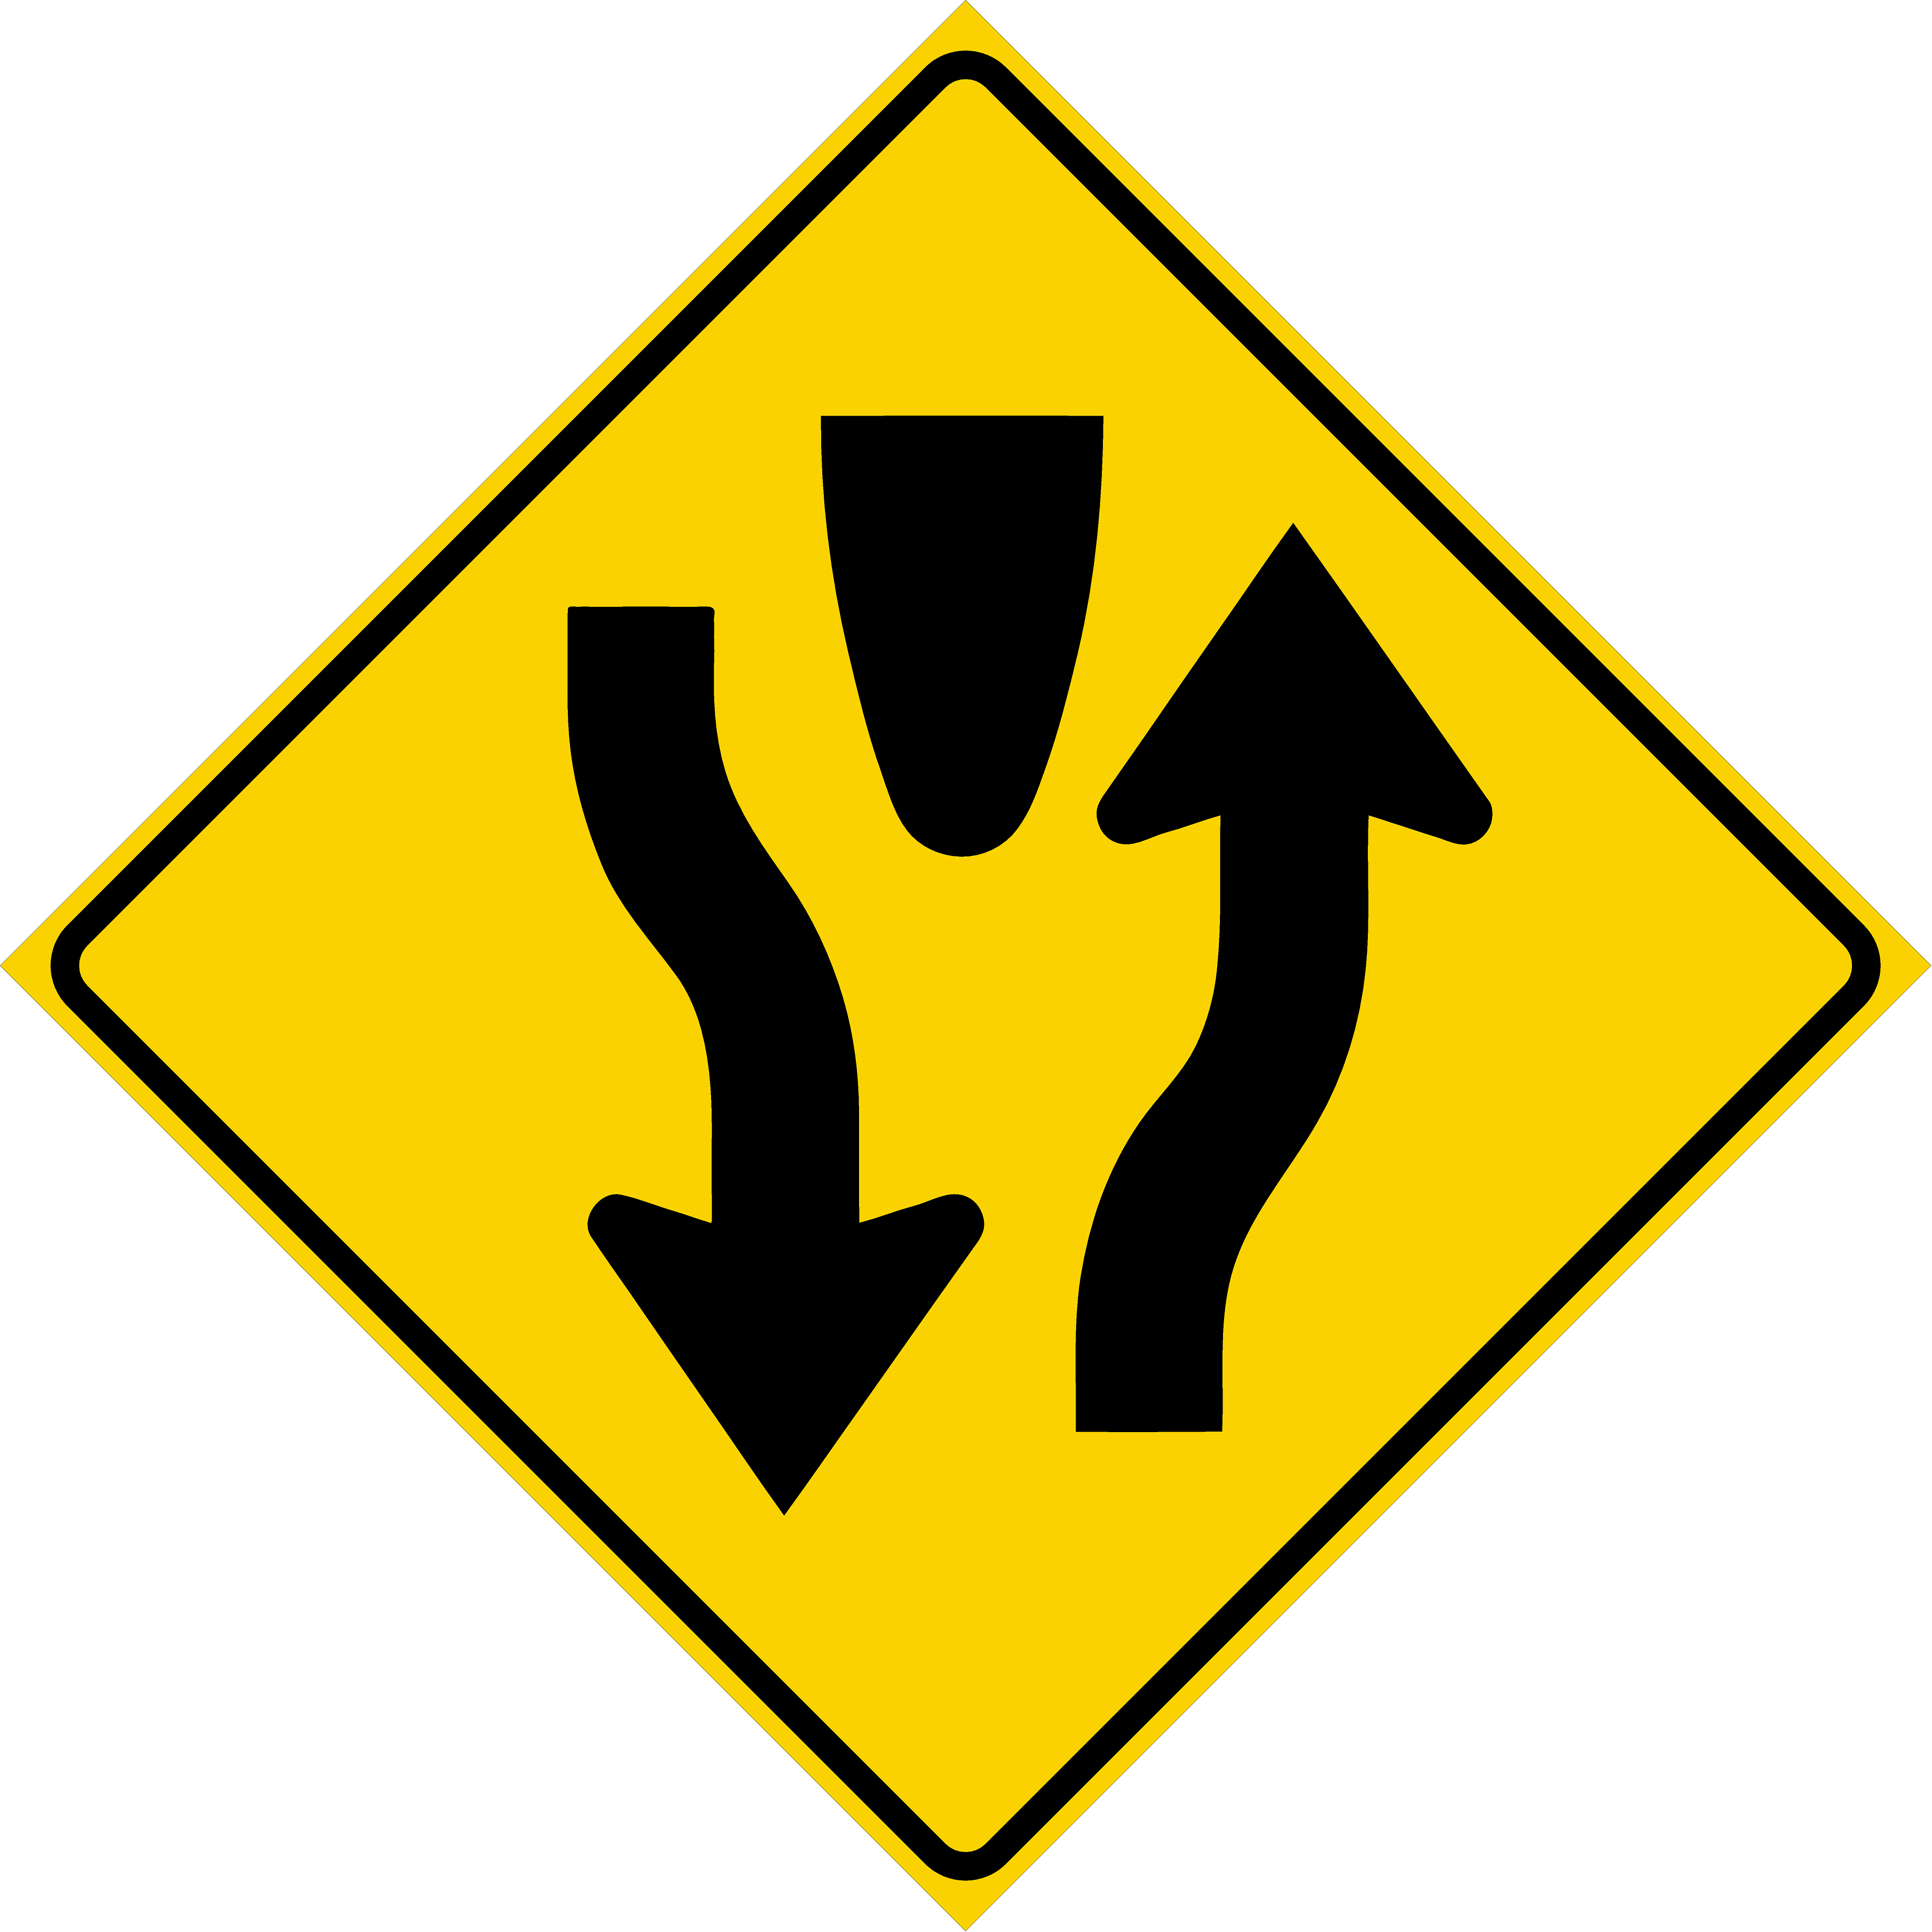 Divided Highway Sign (W6-1)